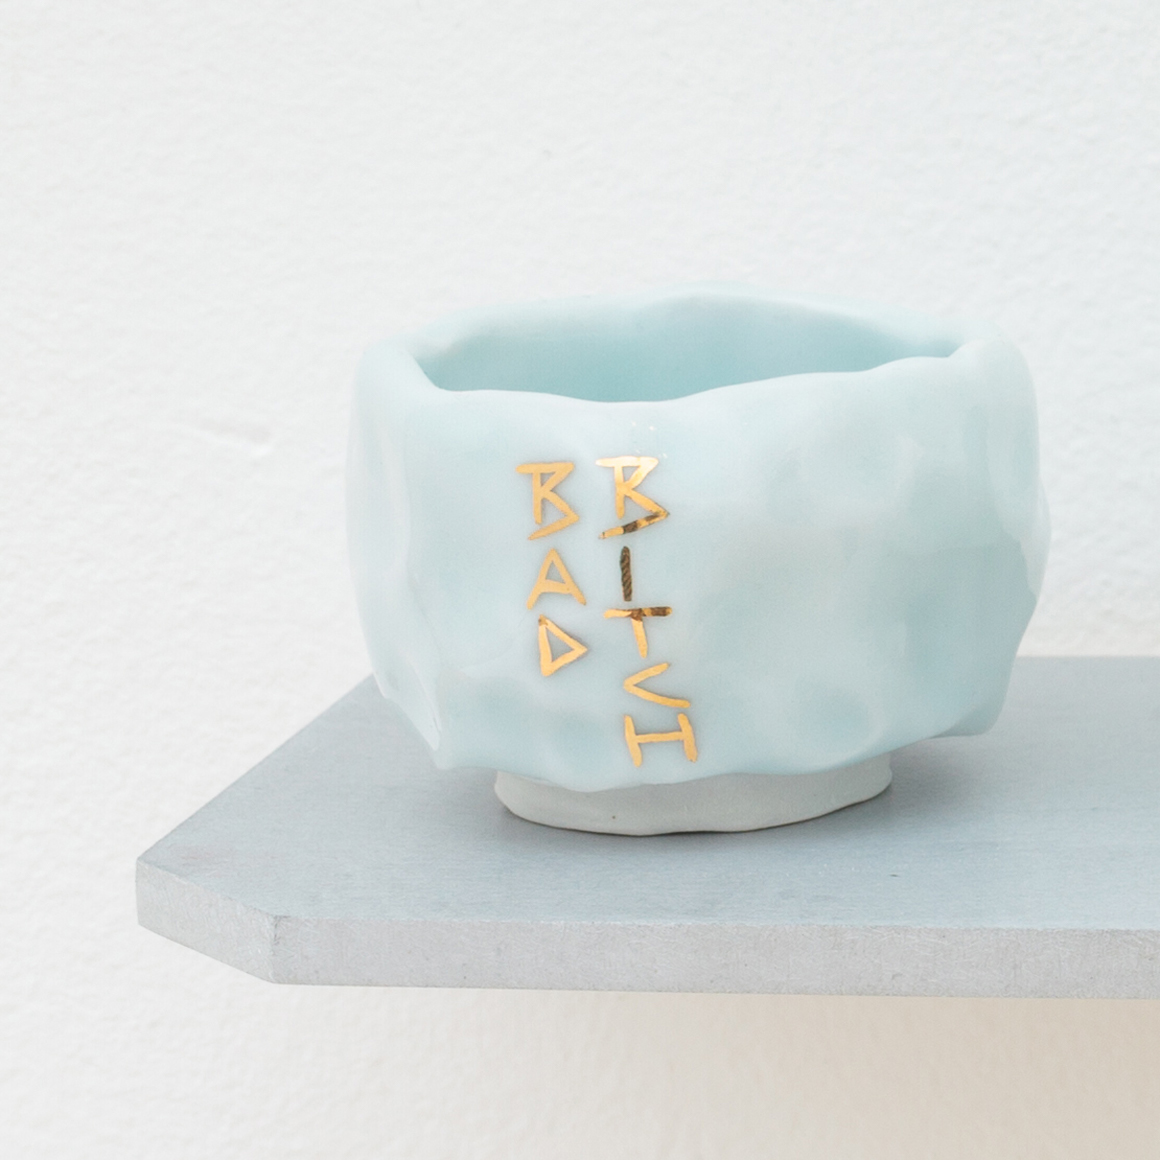 "<p><span class=""name"">Patrice Renee Washington</span><br><em>Bad Bitch Cup (5)</em><span class='media'>Glazed porcelain, gold luster, aluminum, Sculpey clay</span>1.7625 x 2.25 x 2.25in<br>2016<br><a class='inquire' href='mailto:info@gildargallery.com?subject=Artwork Inquiry PWAS0006&body=I am interested in finding out more about Bad Bitch Cup (5) by Patrice Renee Washington'>Inquire</a></p>"